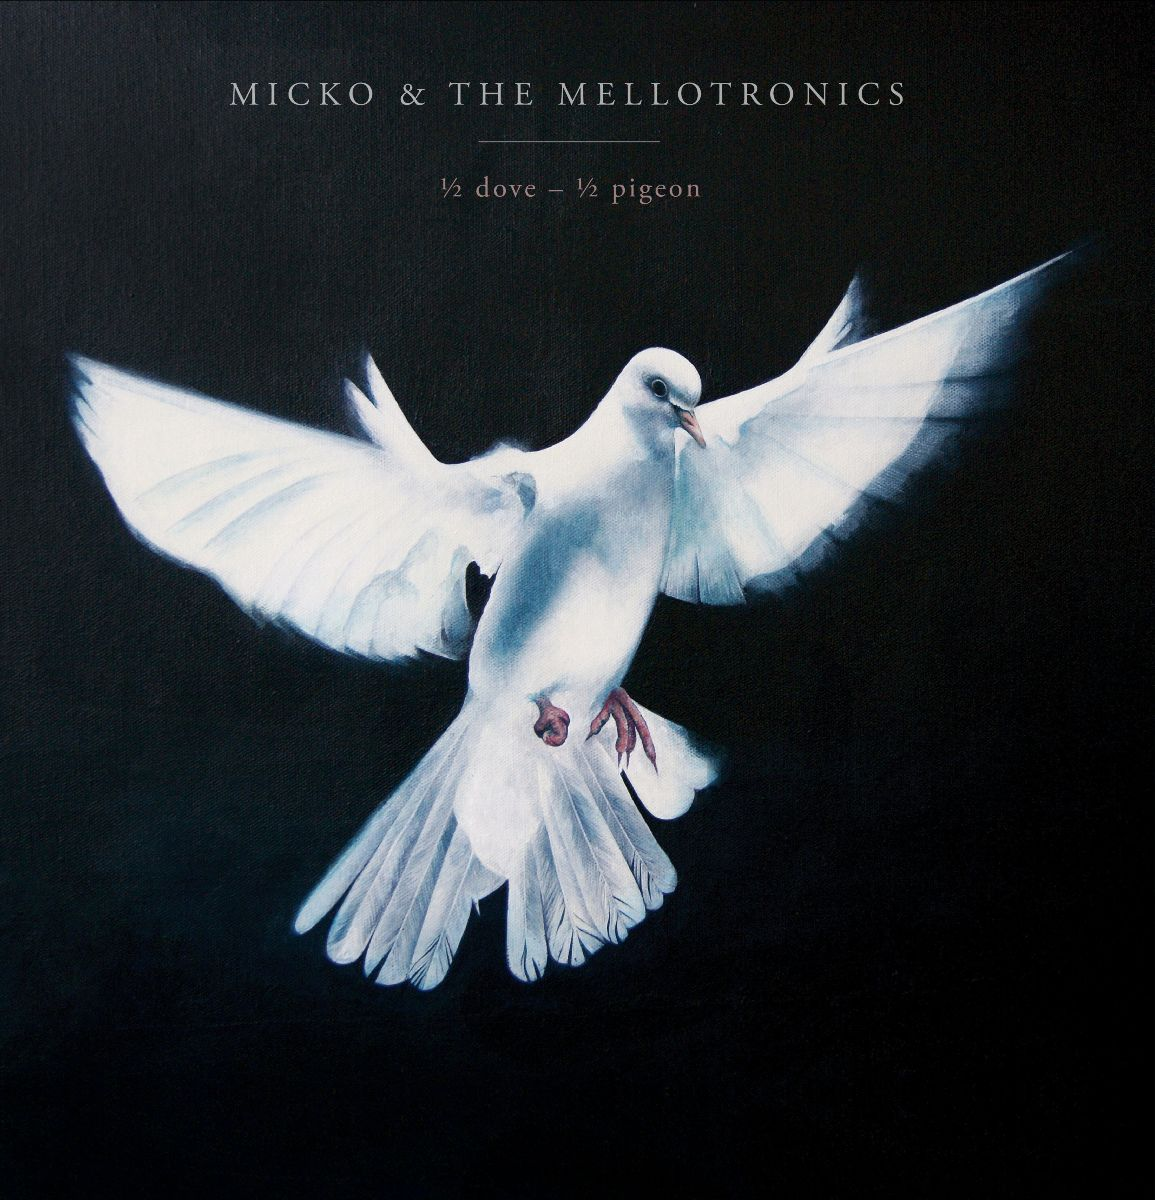 1/2 Dove – 1/2 Pigeon with Micko and the Mellotronics